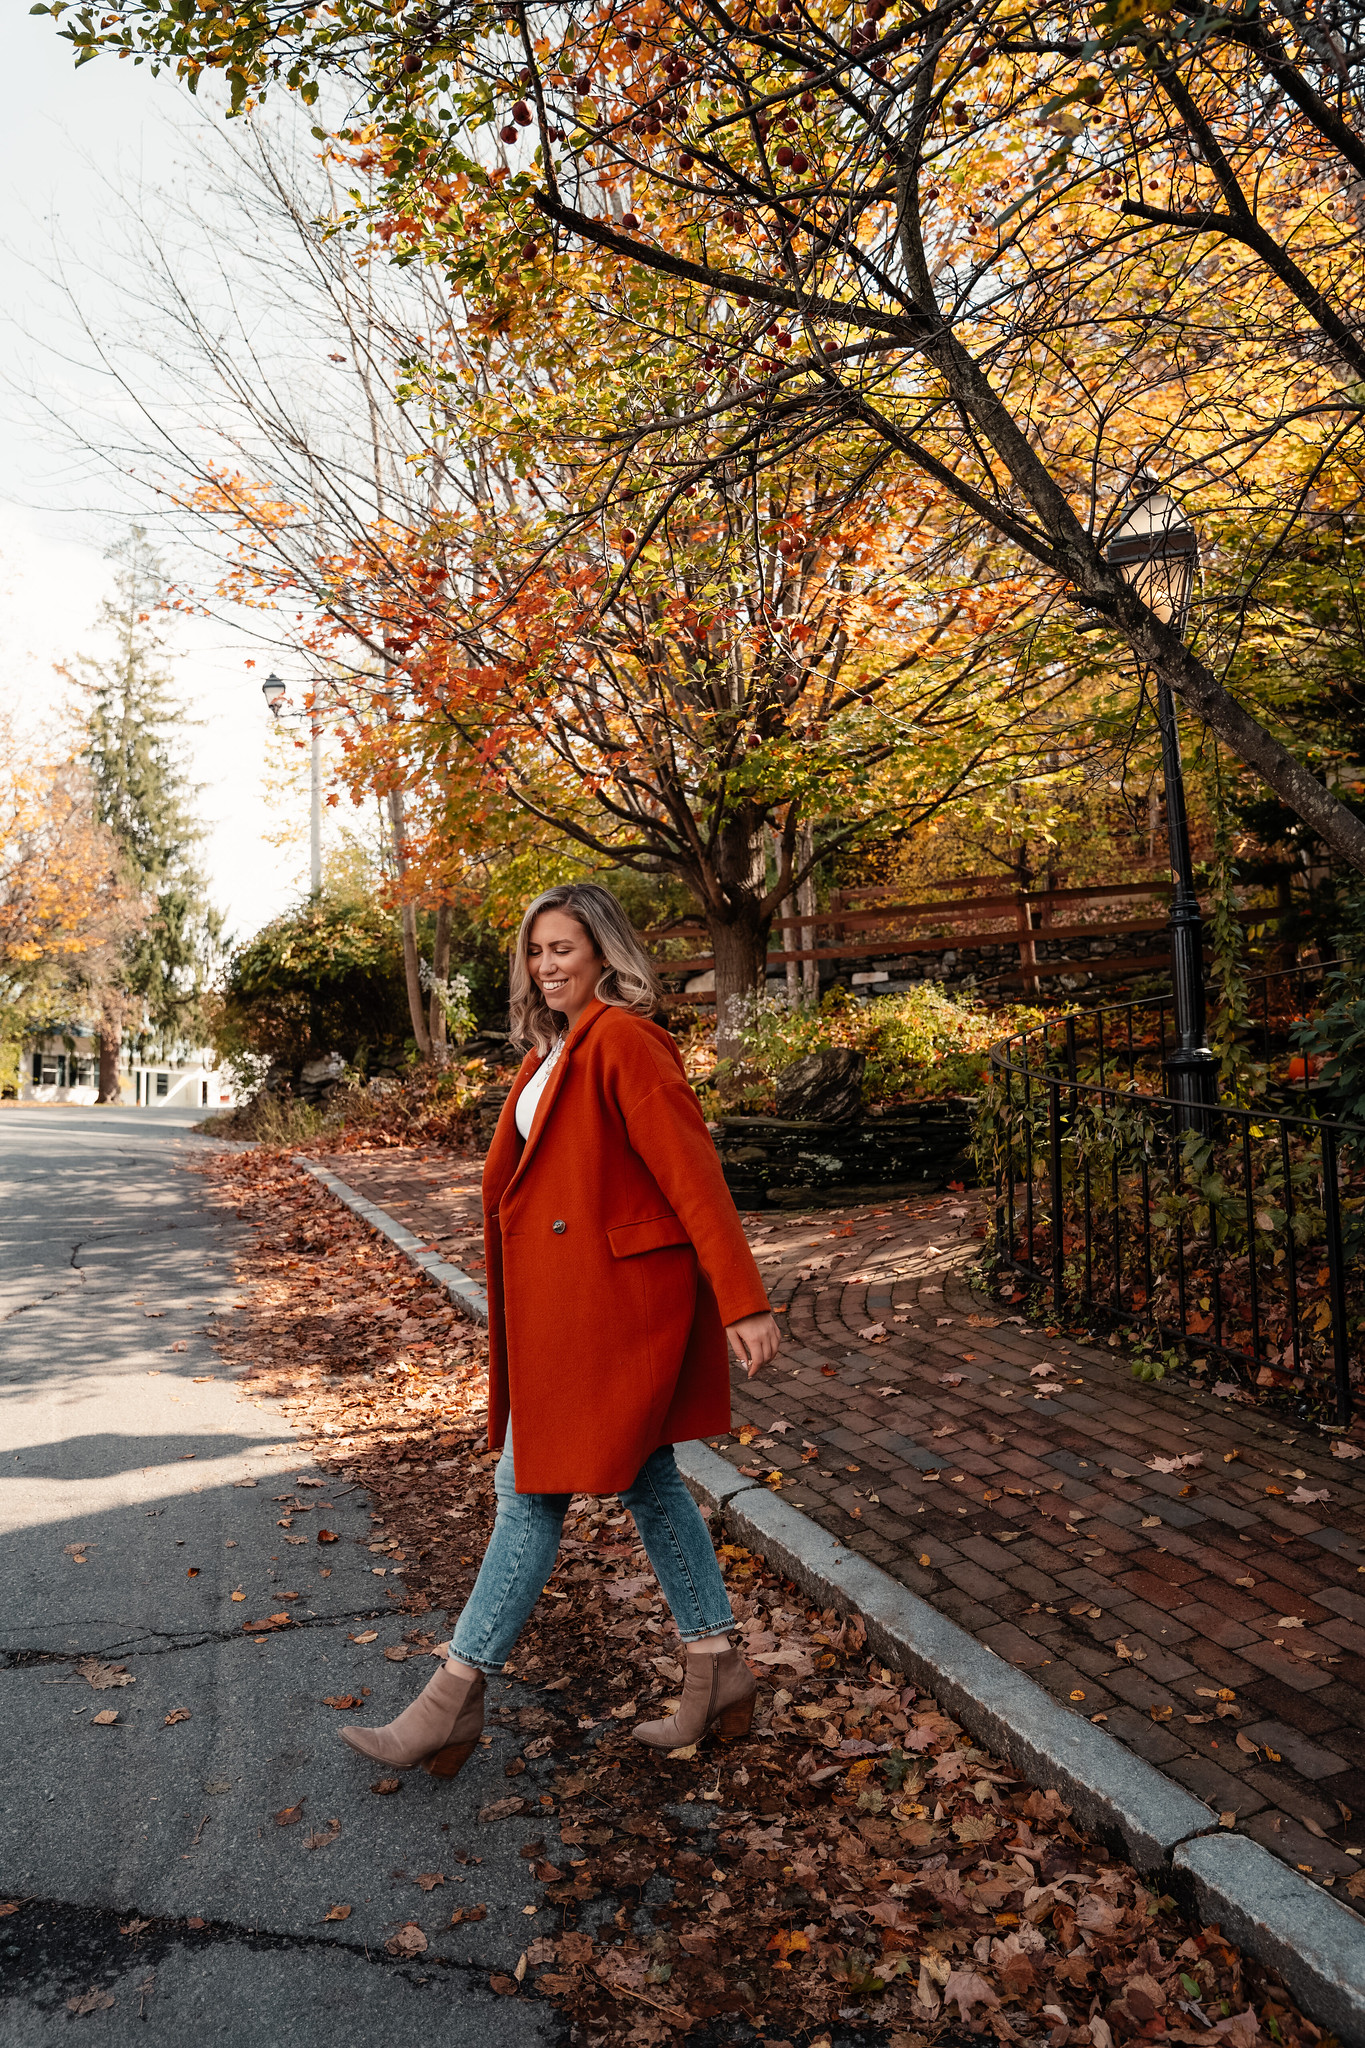 Casual Fall Outfit Inspiration with Orange Coat, Tan Booties and Straight Leg Jeans | Fall Foliage Outfit | What to Wear in Vermont in the Fall | Vermont Packing List for Fall | What to Wear in Vermont in October | What to Wear on a Fall Vacation | Fall Outfits